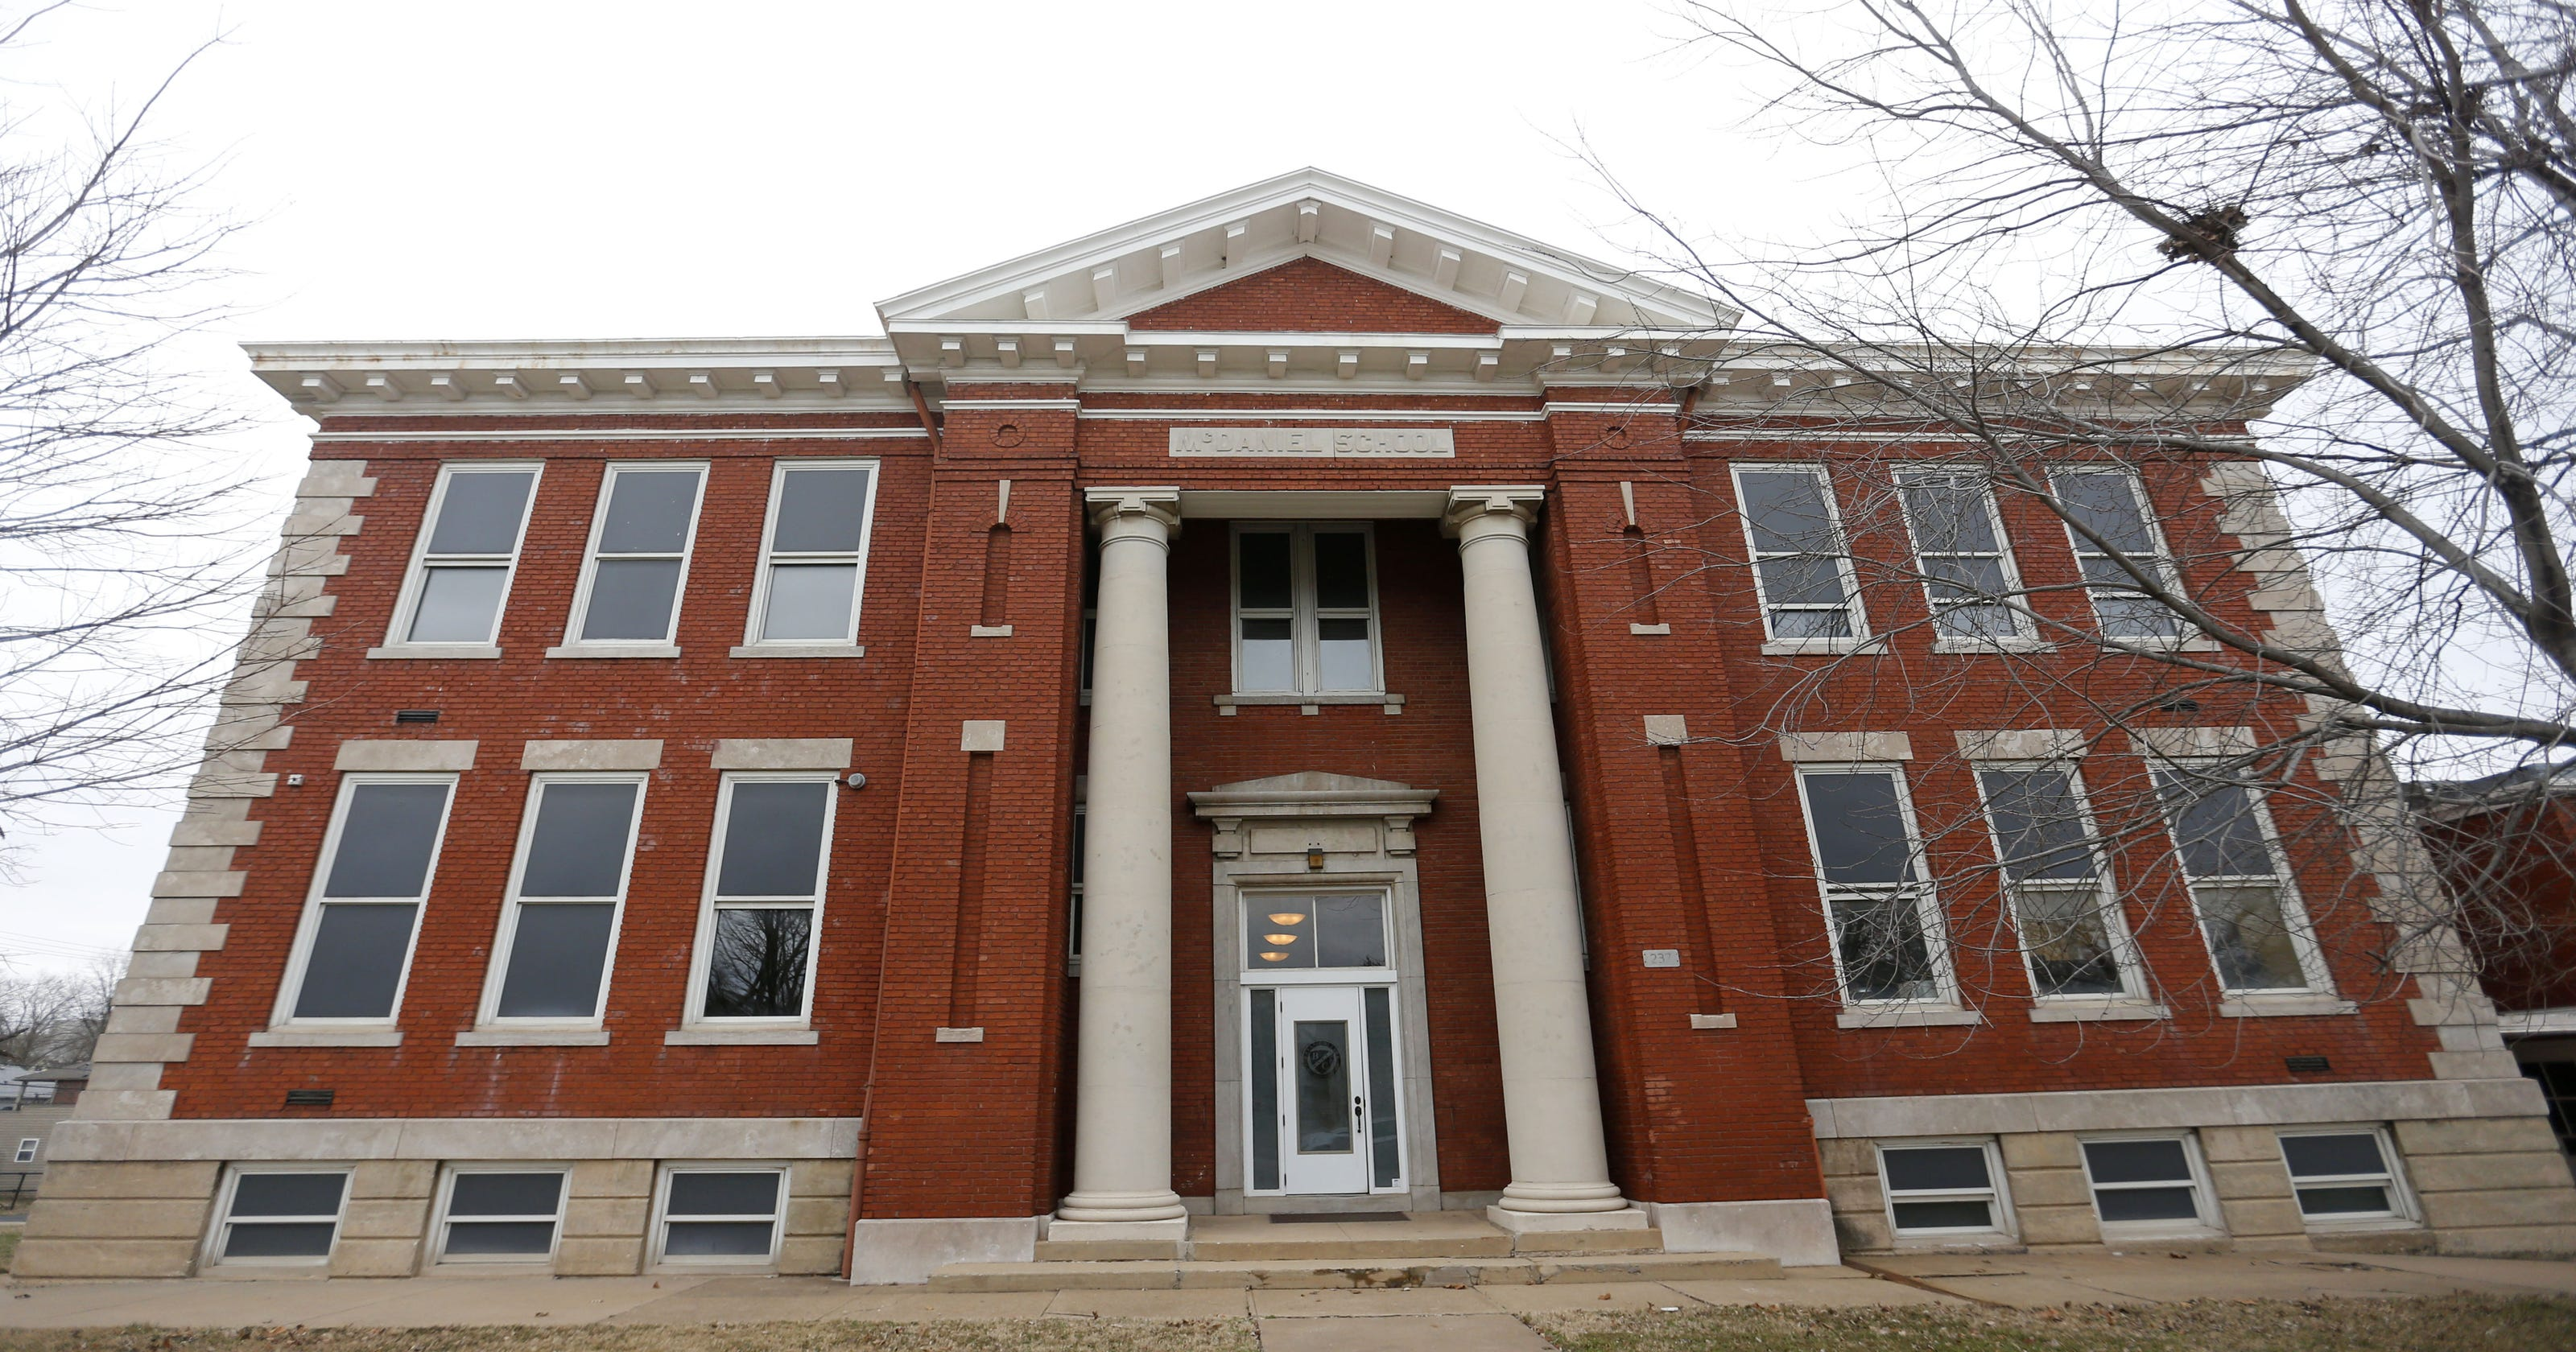 Former Springfield school, built 110 years ago, up for